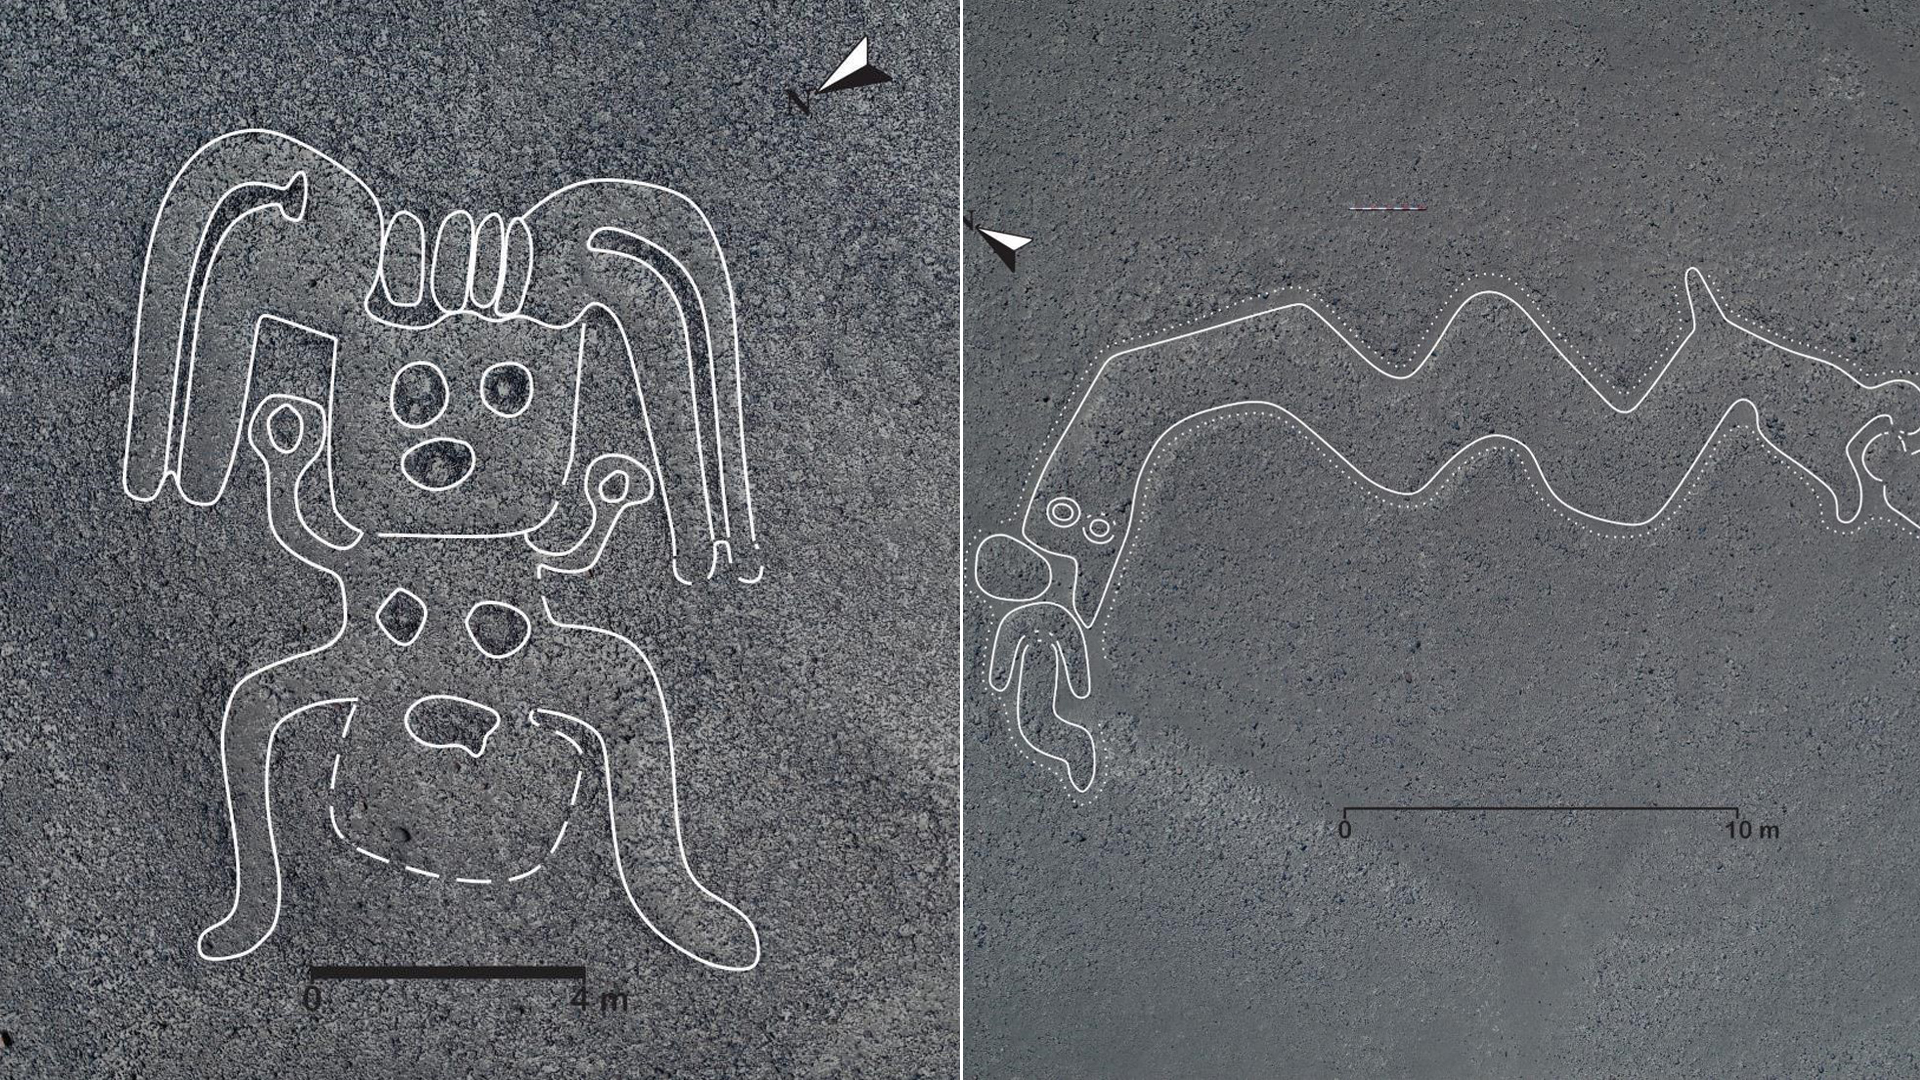 Yamagata University released these images on Nov. 15, 2019 of geoglyphs found by researchers in Peru.